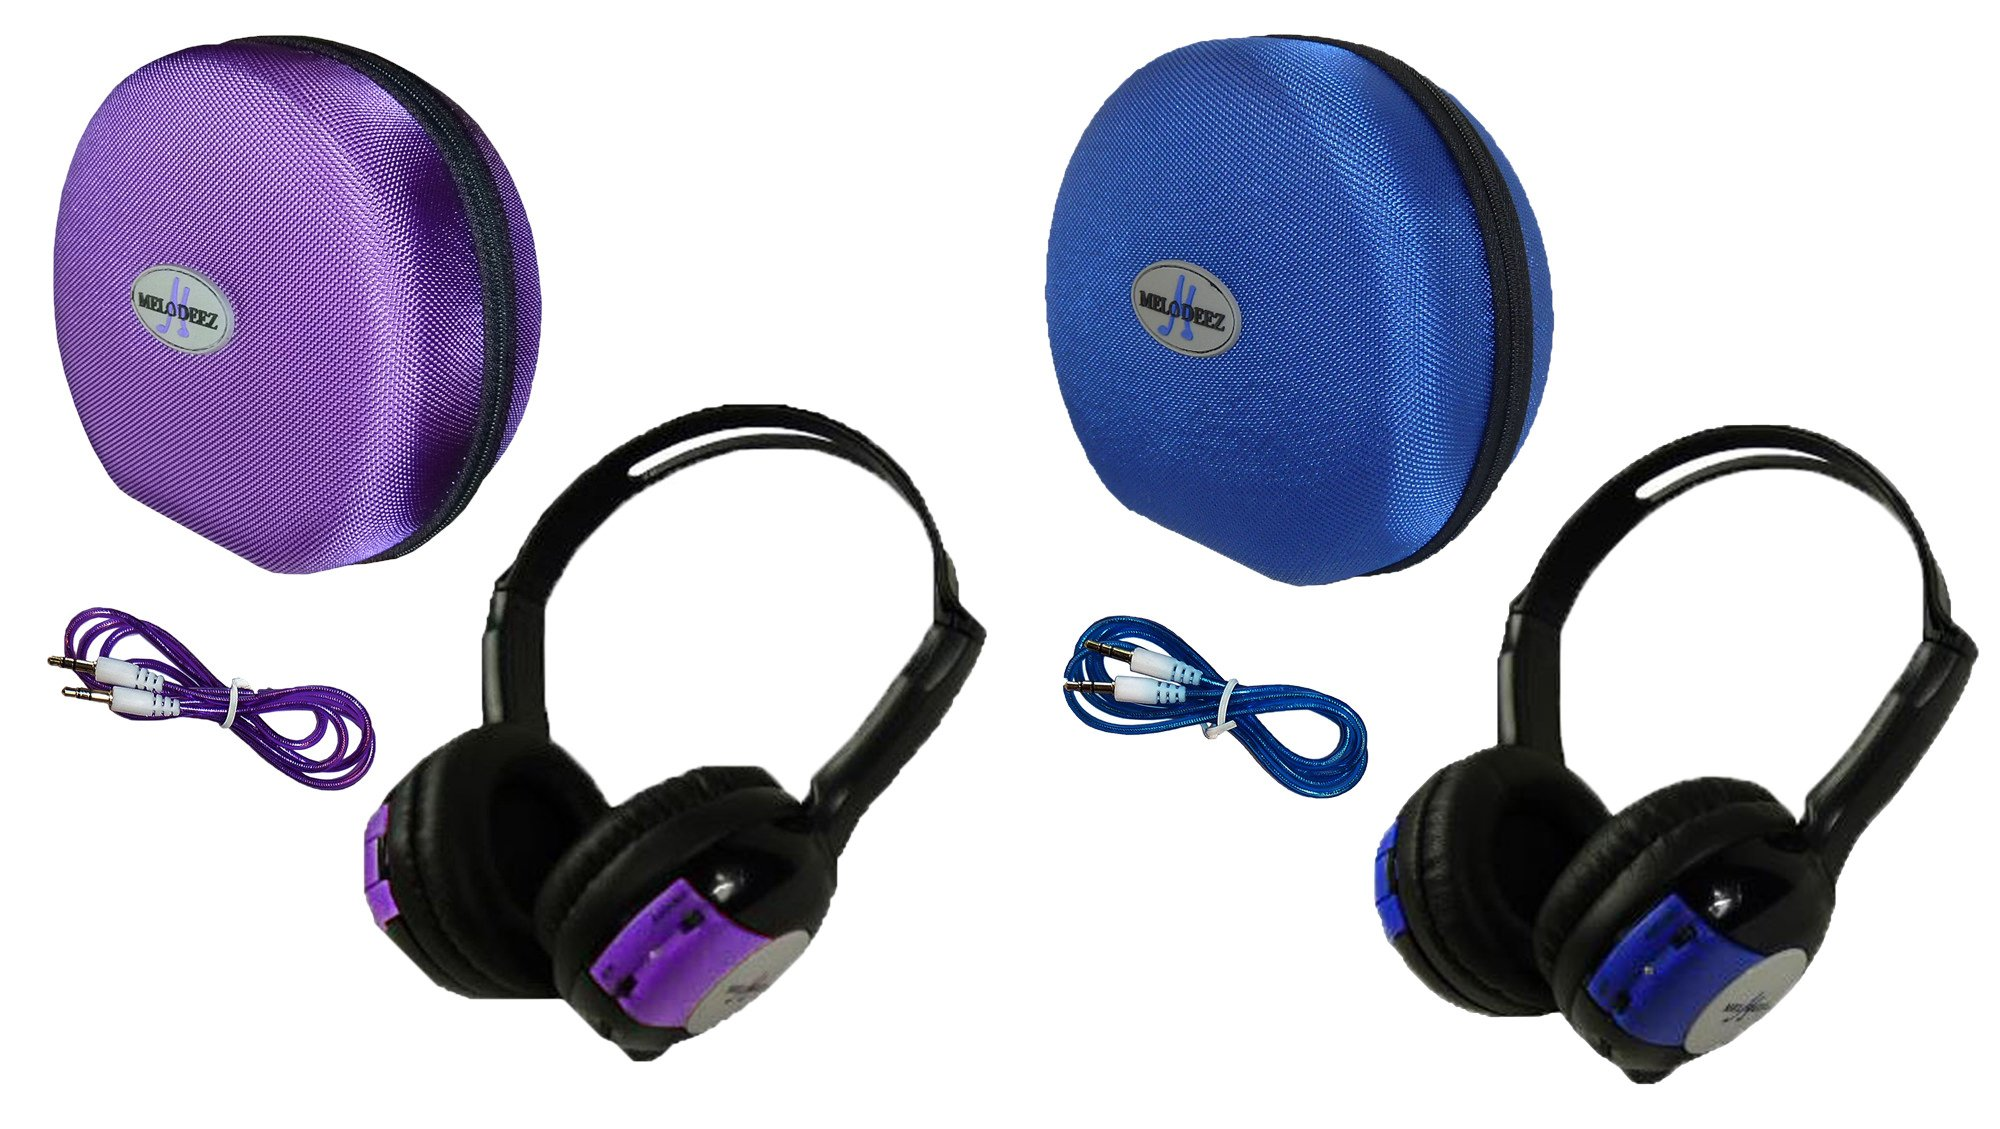 2 Pack Kid Sized Wireless Infrared Car DVD IR Automotive Colored Adjustable 2 Channel Headphones With Case and 3.5mm Auxiliary Cord. Note: Will Not Work on 2017+ GM's or Pacifica by Wisconsin Auto Supply